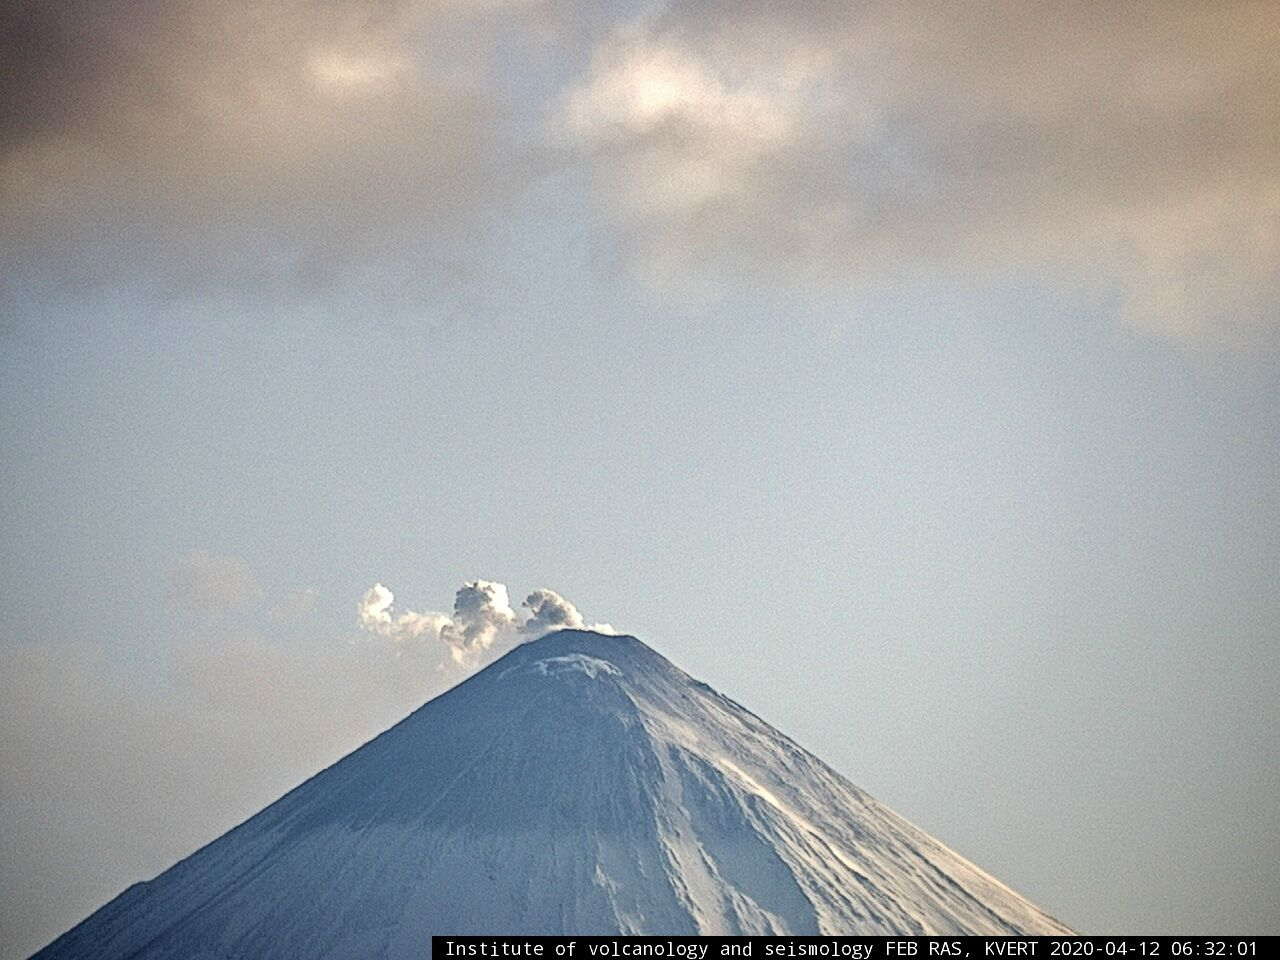 Klyuchevskoy - 12.04.2020 / 6:32 am - Seen from F.Yu. Levinson-Lessing Kamchatkan Volcanological Station / Klyuchi village - photo IVS FEB RAS KVERT